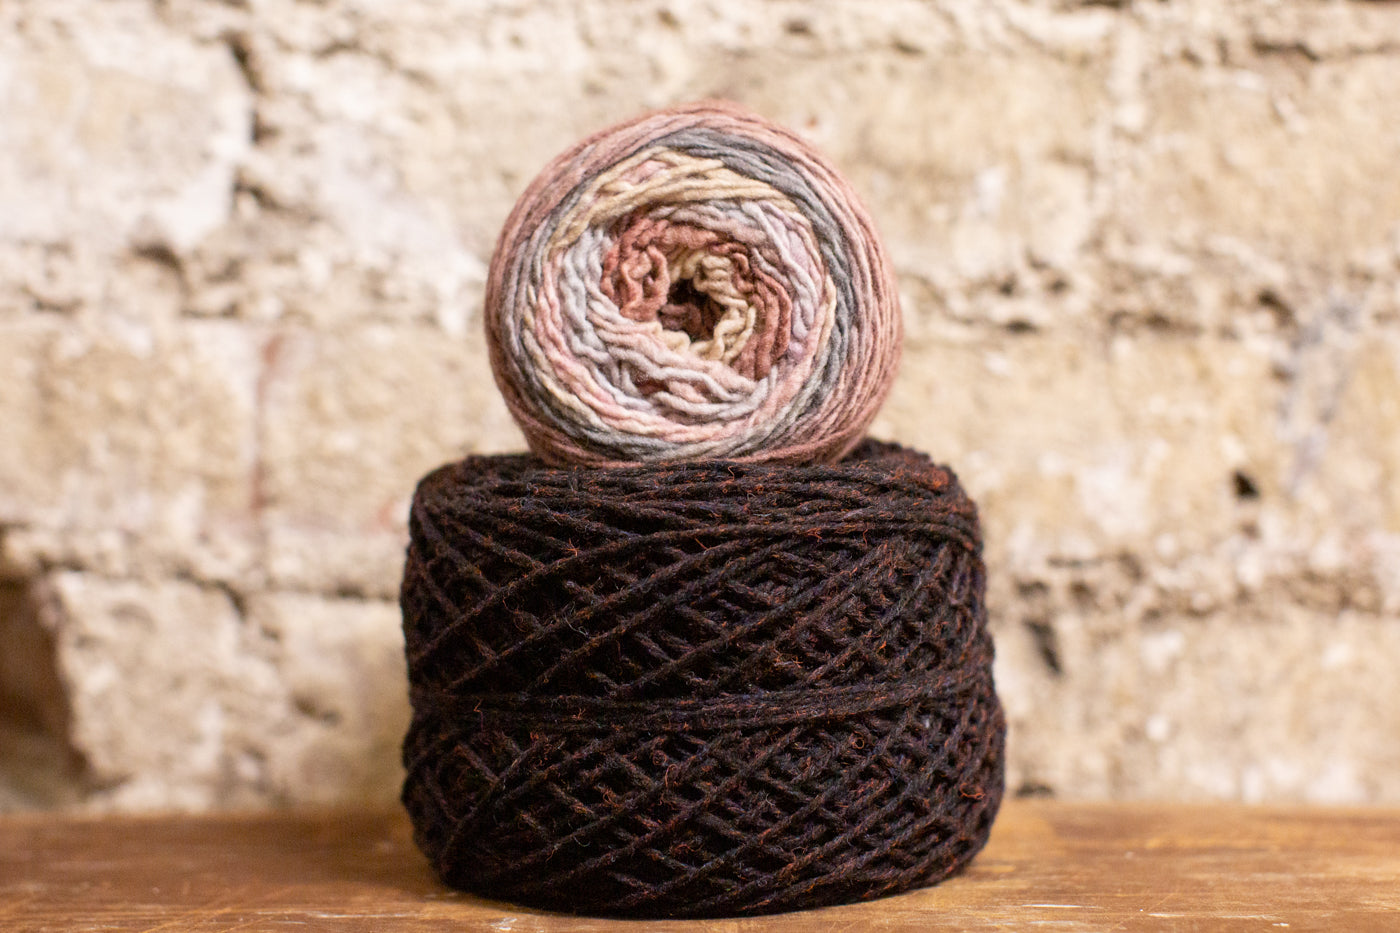 Yarn against sitting on a wooden surface against a whitewashed brick wall.  The yarn is Cottongrass in the beautiful black heather in the color Cinder with Freia flux yarn in an ombre effect in Purpleheart, sitting on top sideways to see the ombre colors.